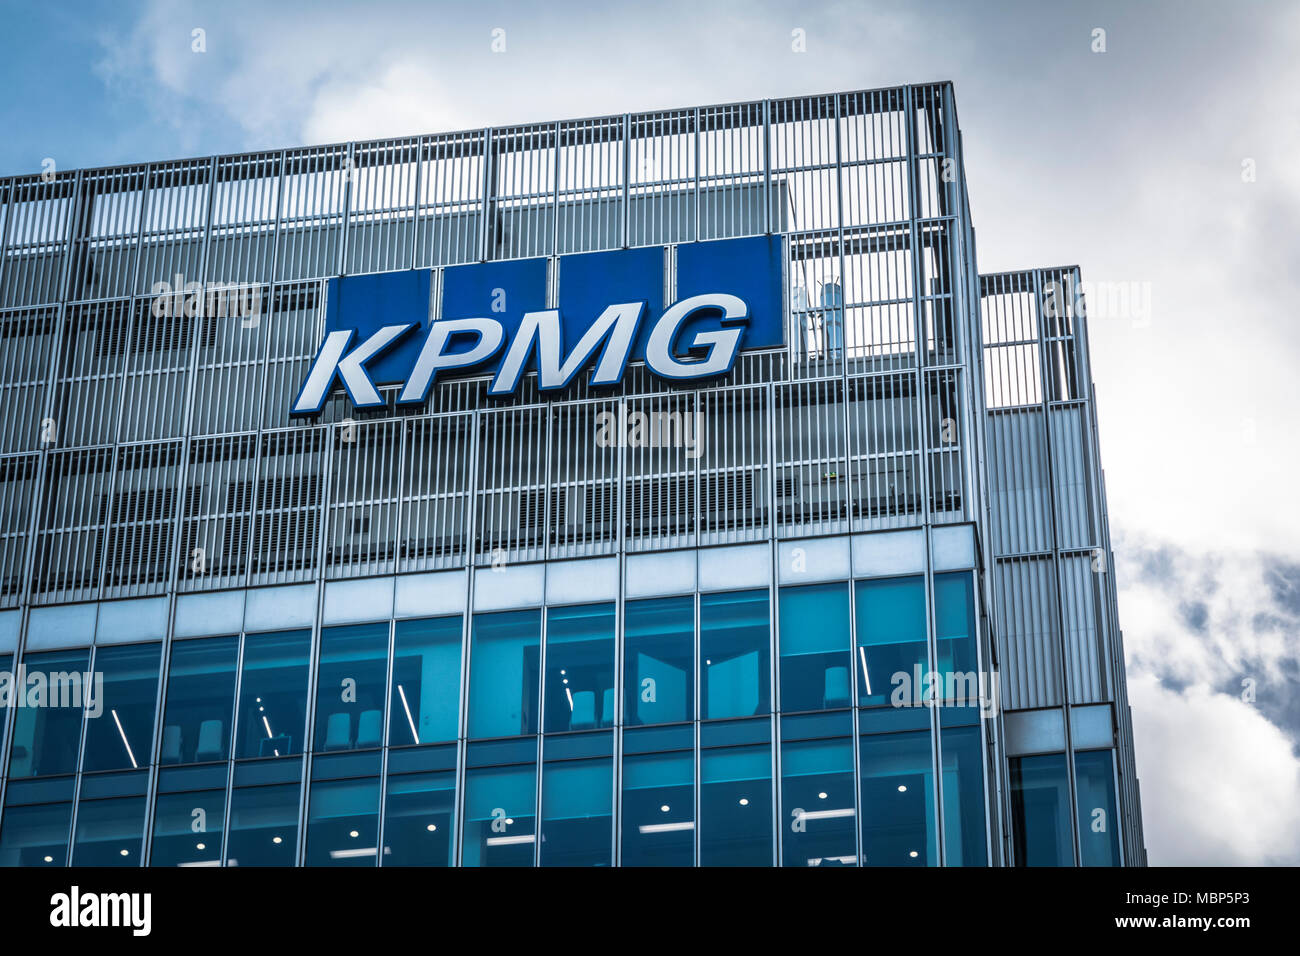 KPMG building, London, UK Stock Photo